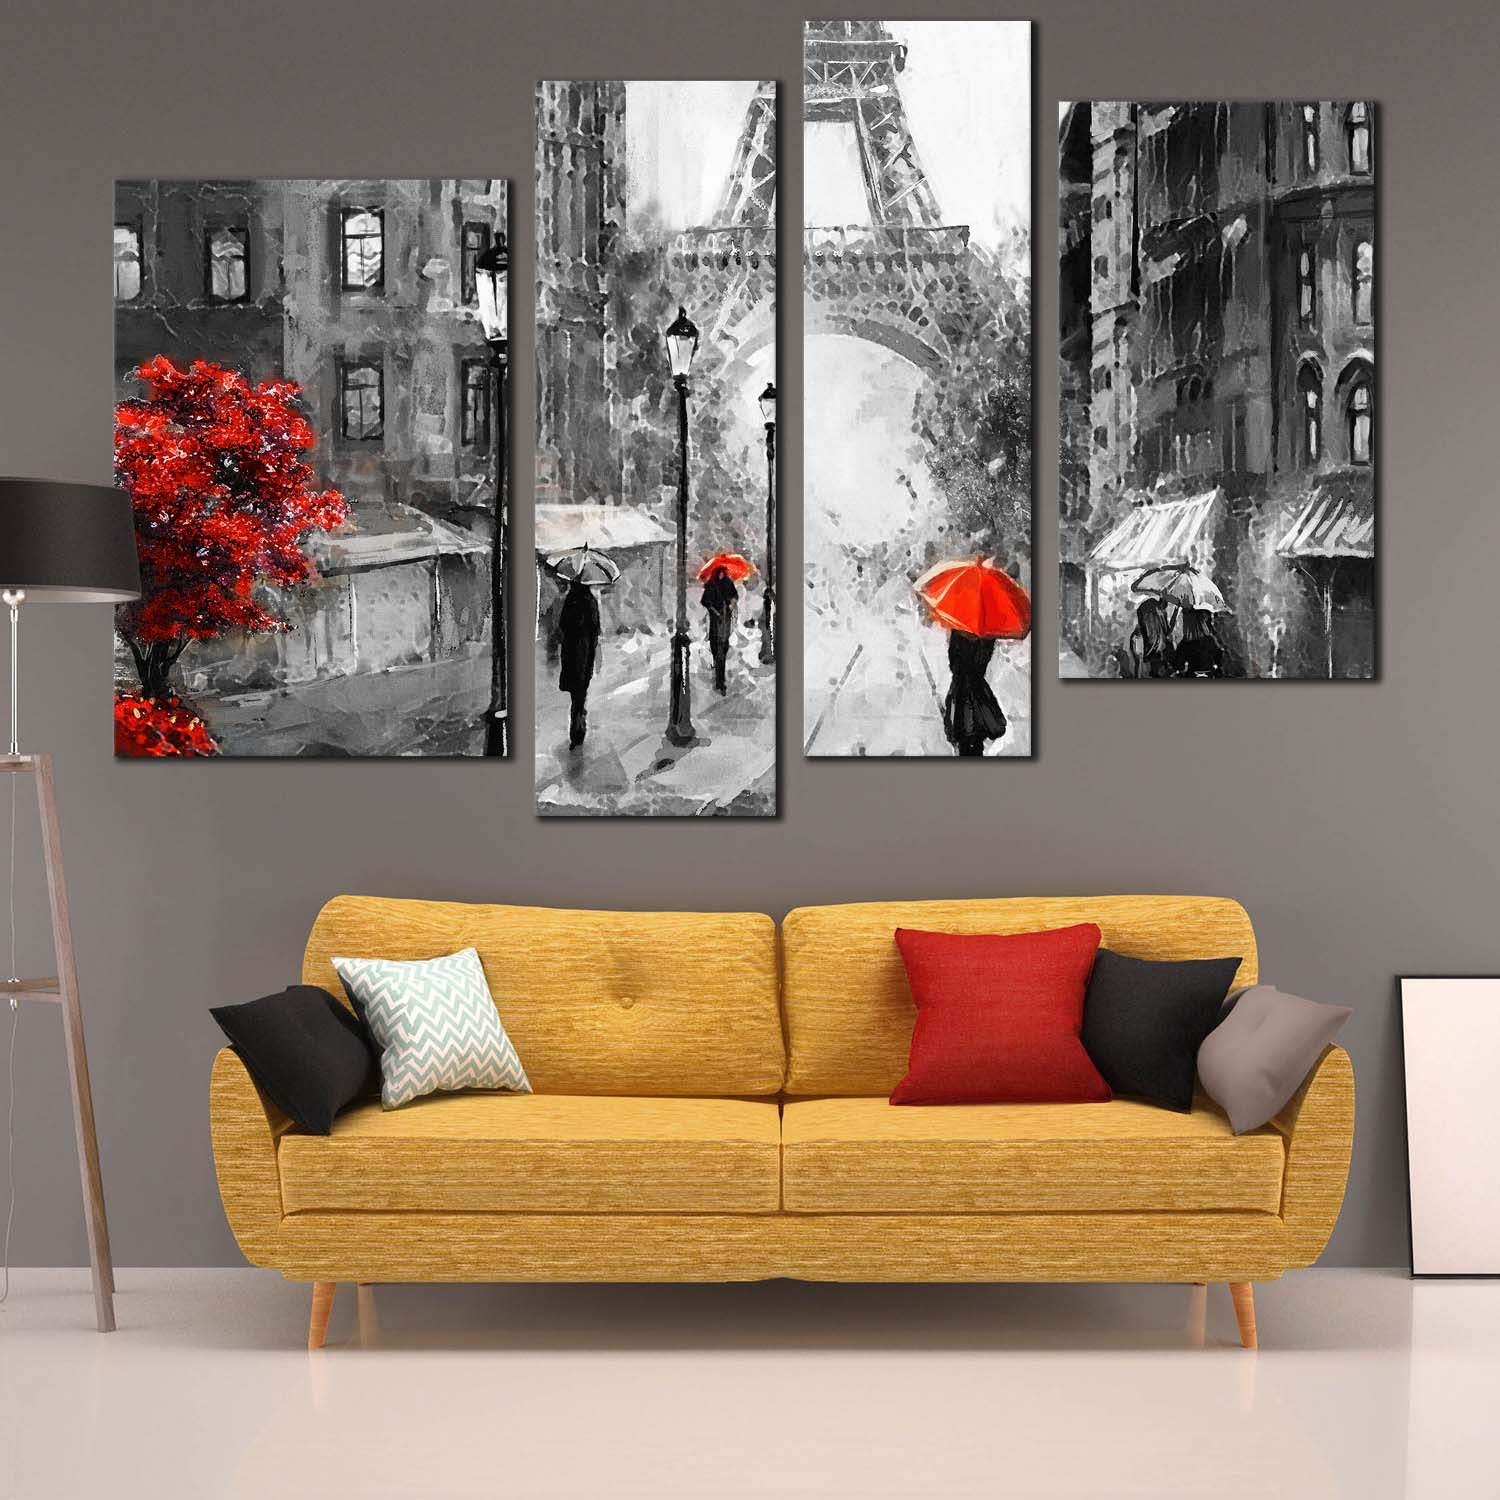 France Street Canvas Wall Art Red Tree People With Umbrella Canvas Print Paris Grey Cityscape 4 Piece Canvas Set